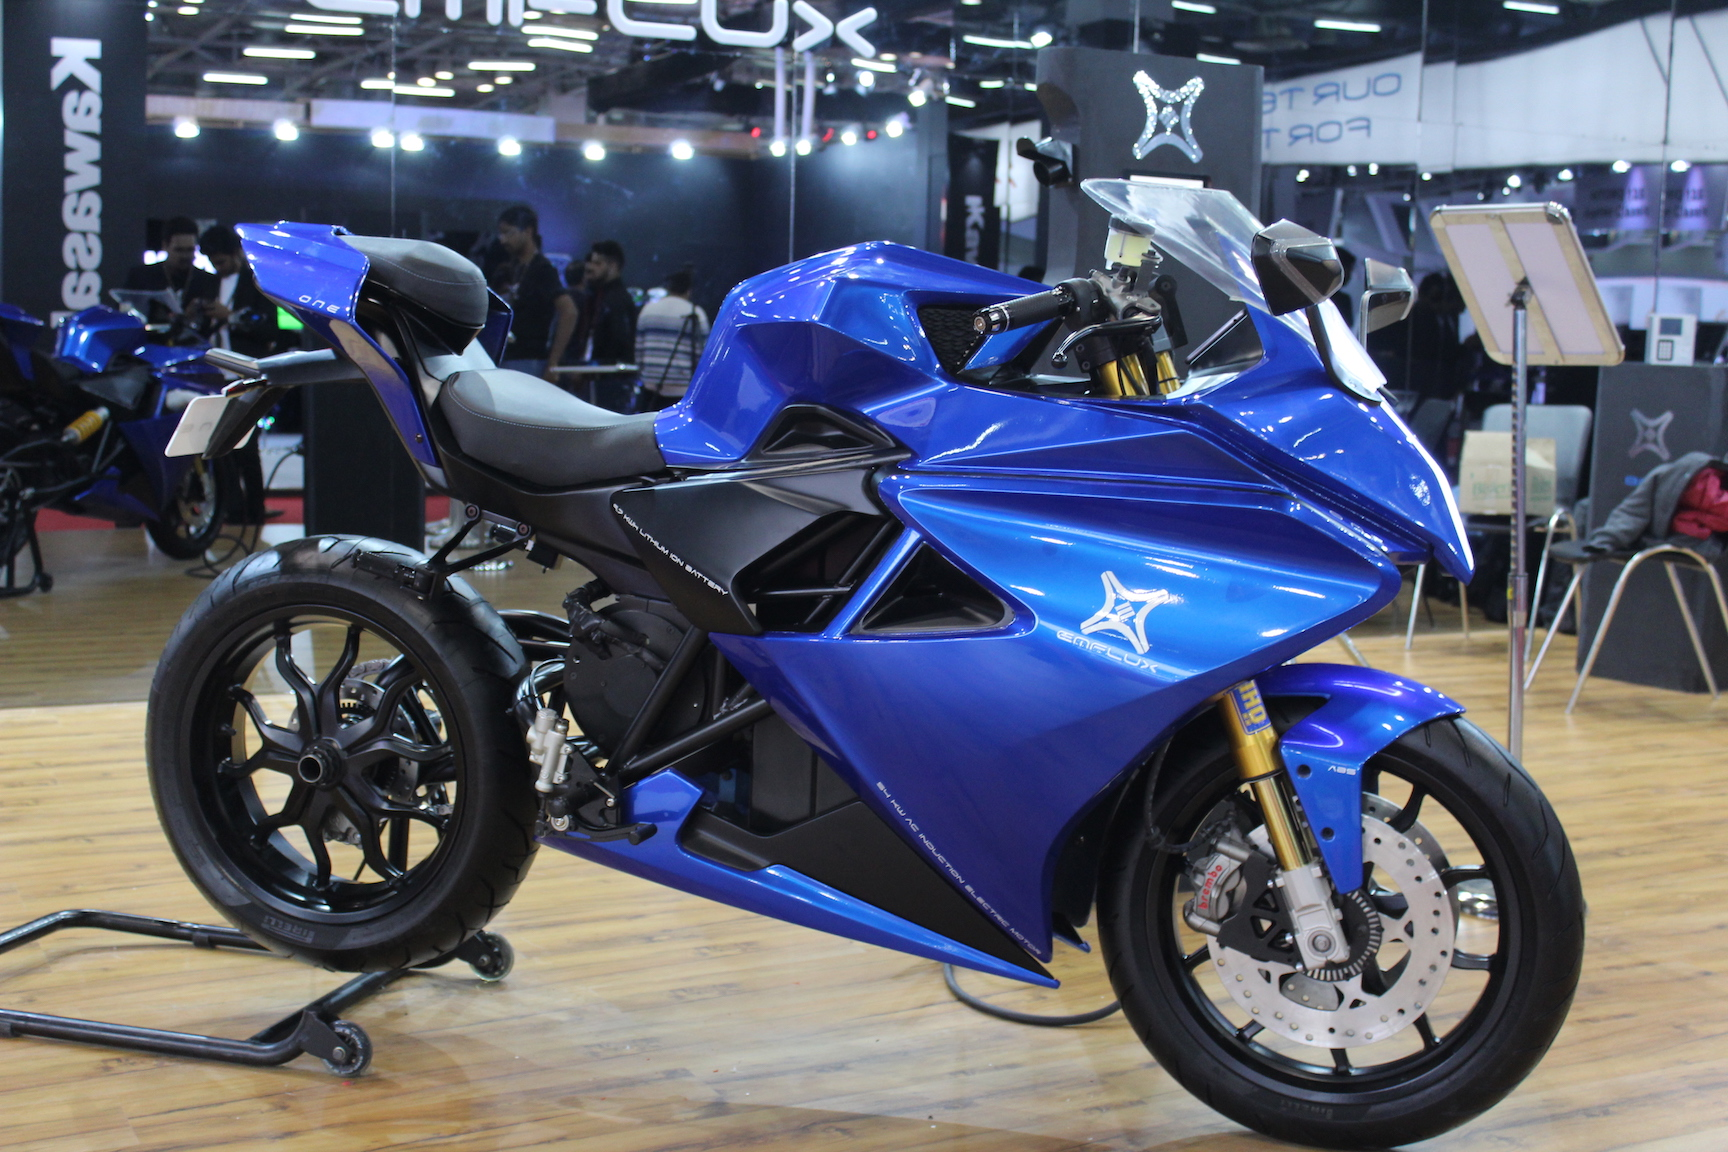 Emflux One electric motorcycle could be the next affordable electric sportbike at $9,000